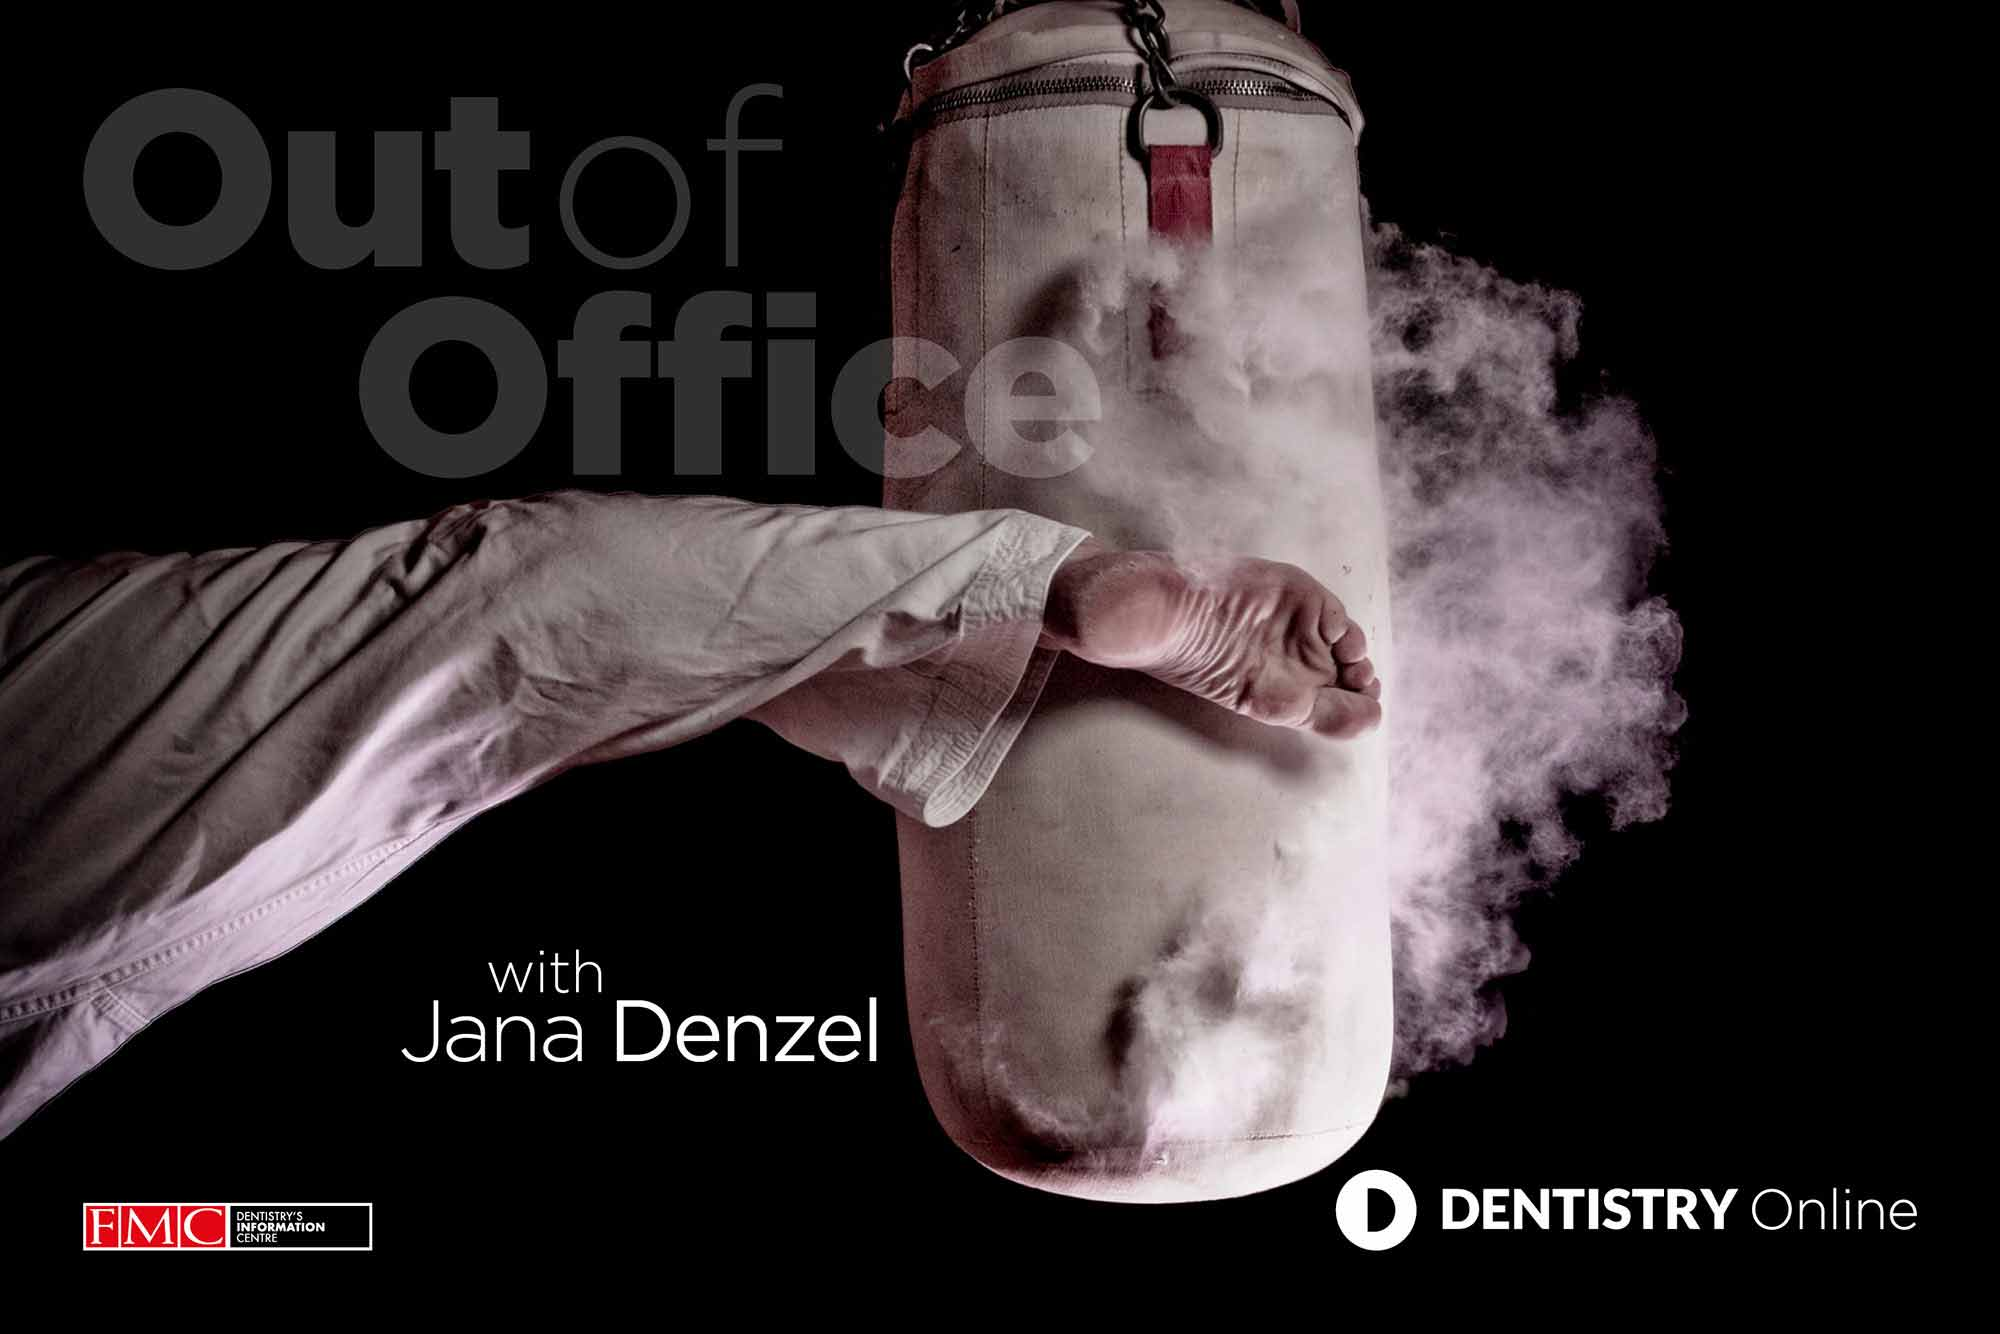 Out of office – Jana Denzel on martial arts and his clothing line